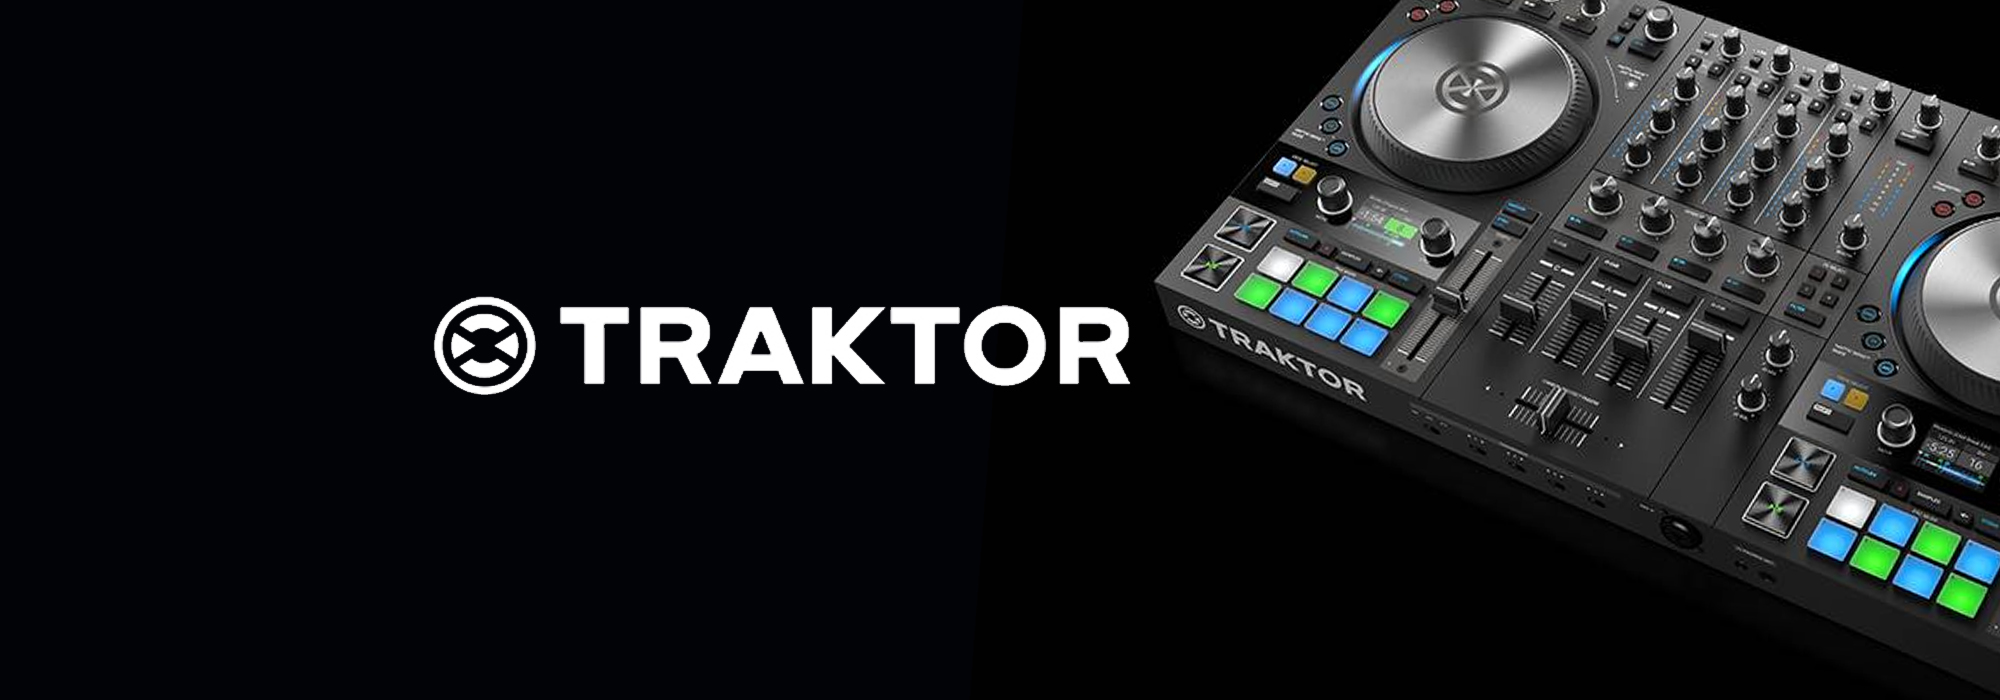 REVOLUTIONARY-SLIDER-TRAKTOR